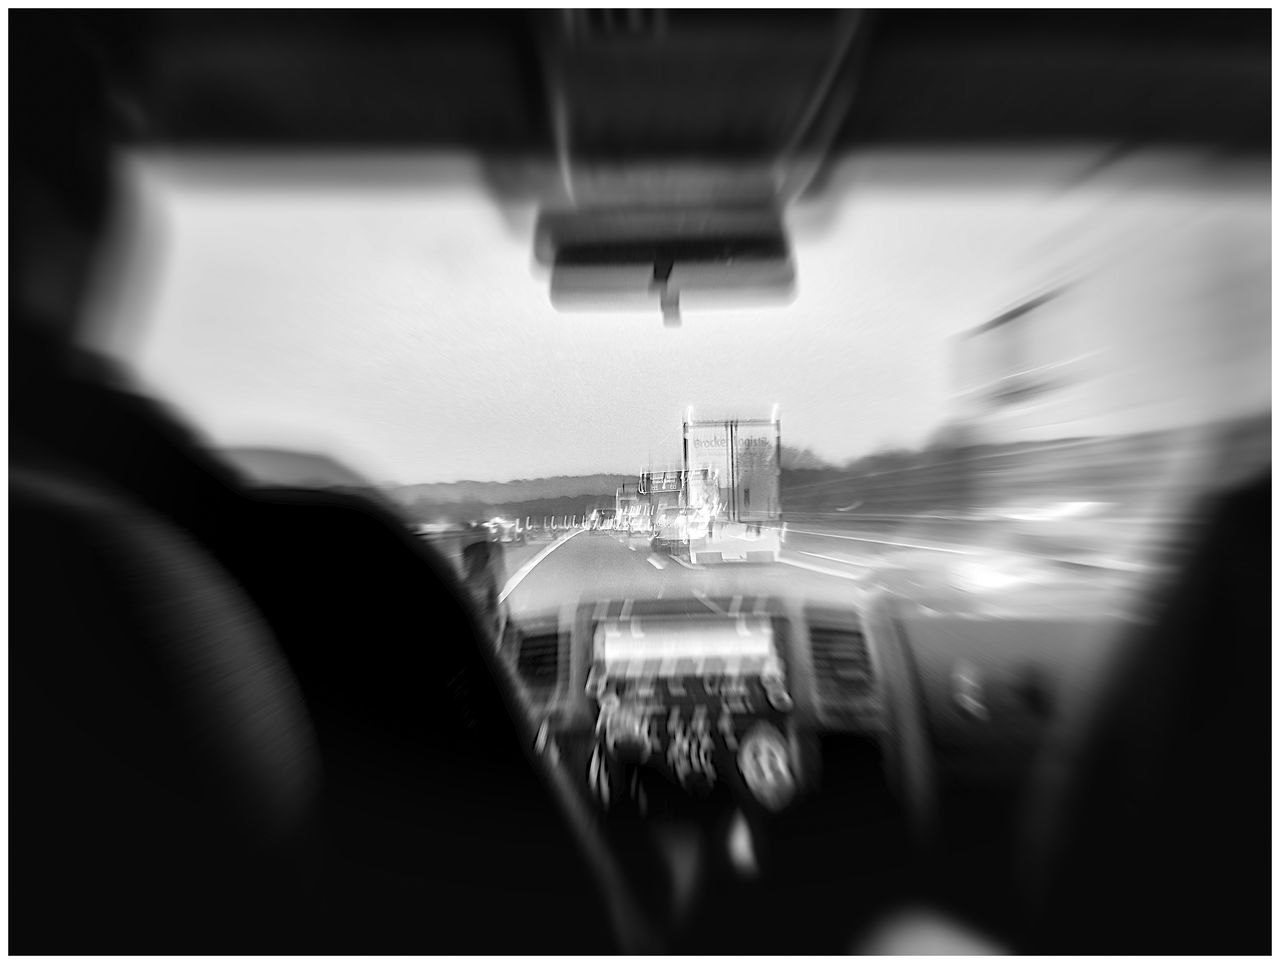 Blurred Motion Of Car Interior